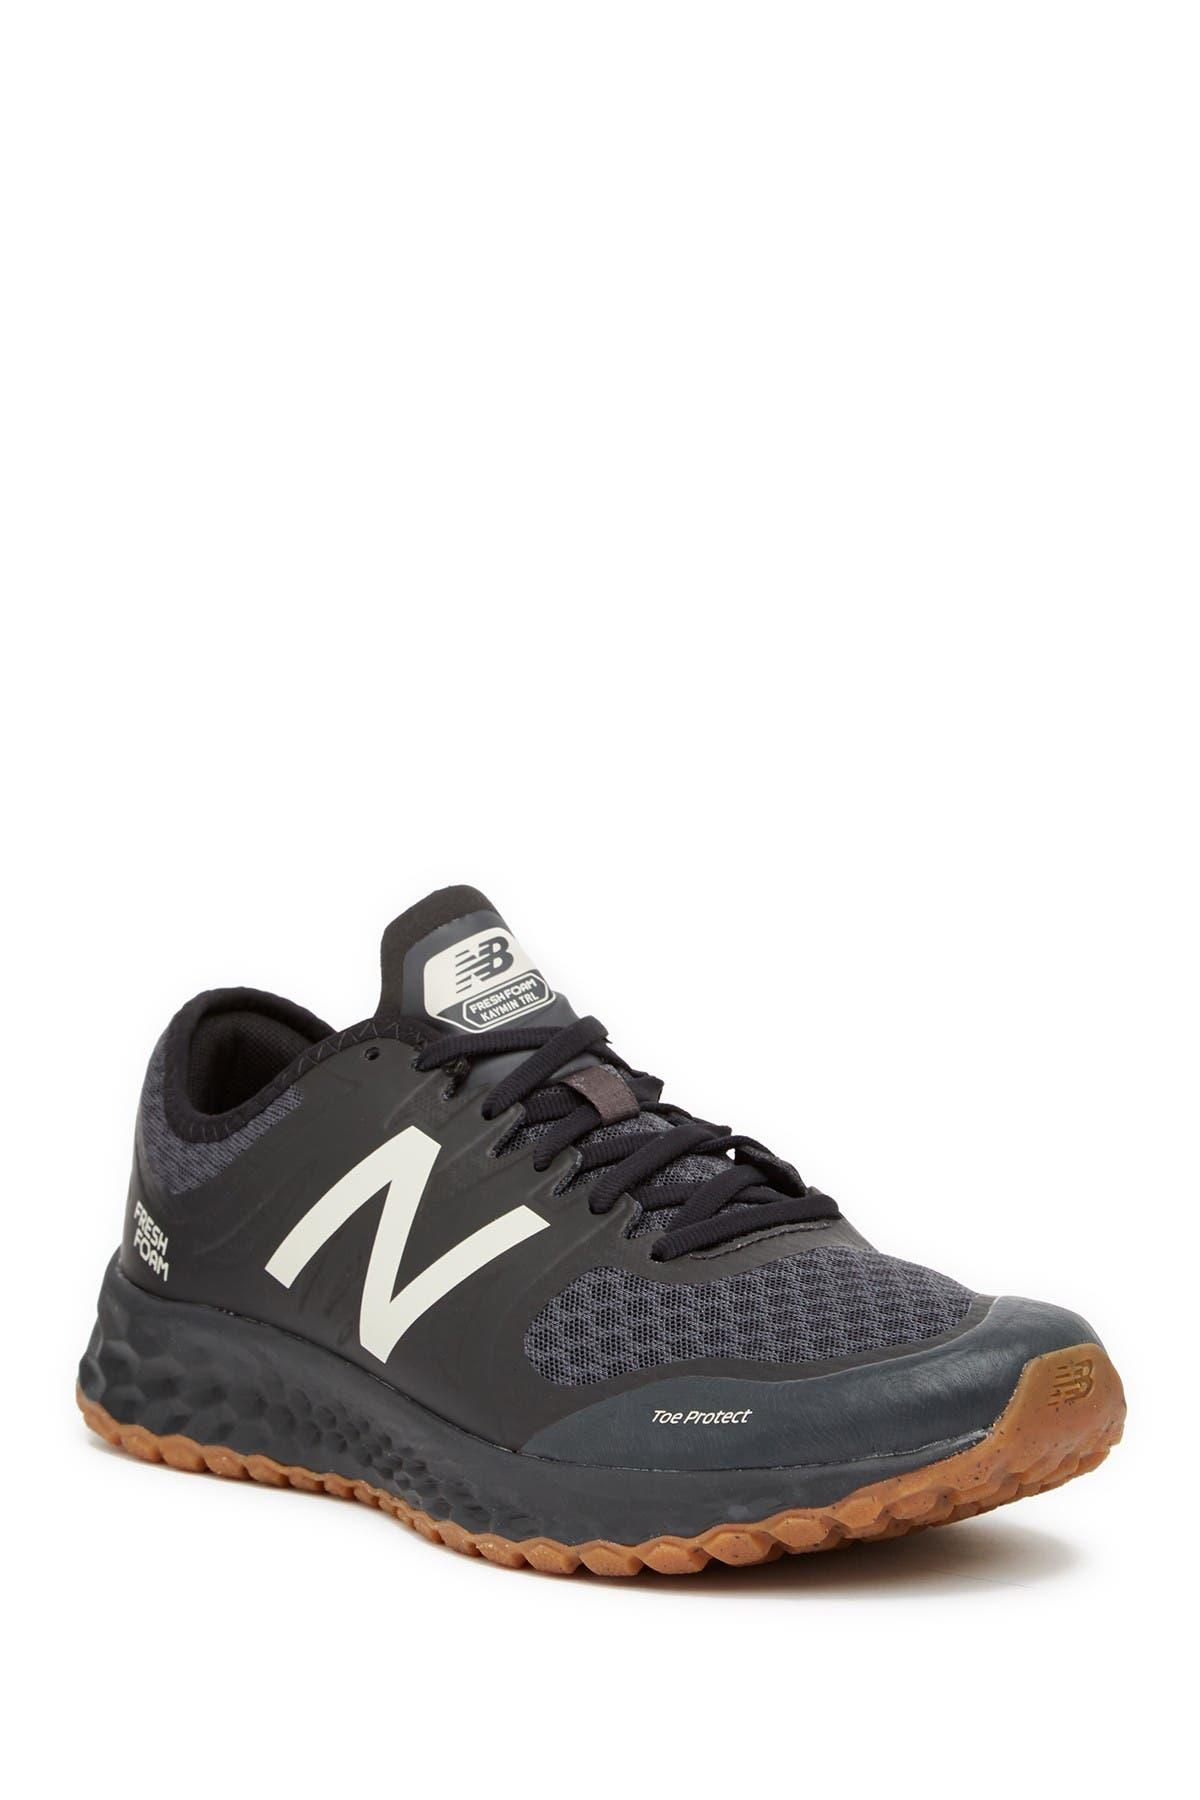 Image of New Balance Trail Running Fresh Foam Sneaker - Multiple Widths Available